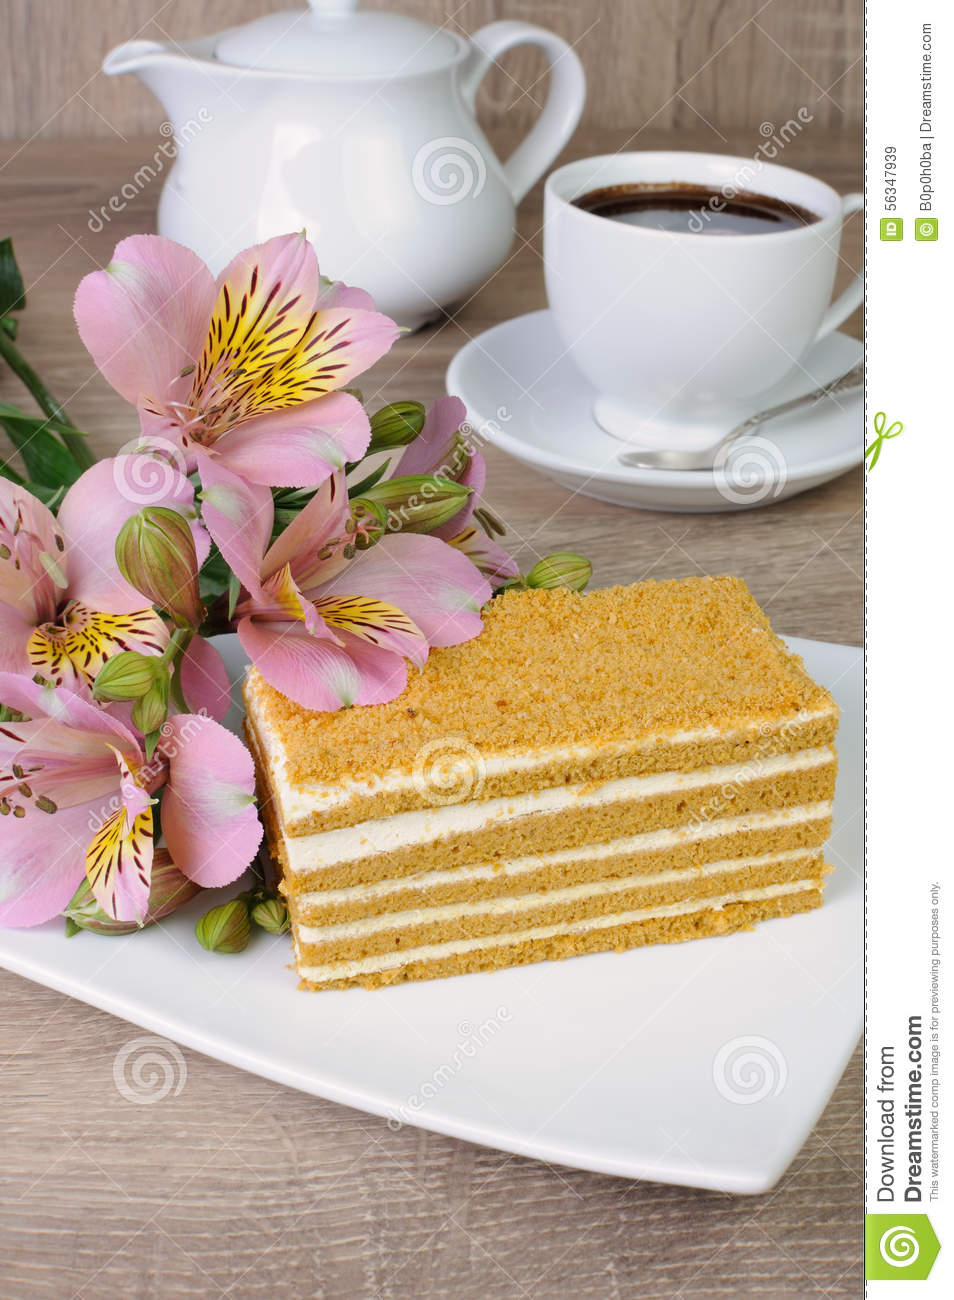 Clipart Of Honey Cake : Honey Cake Stock Photo - Image: 56347939